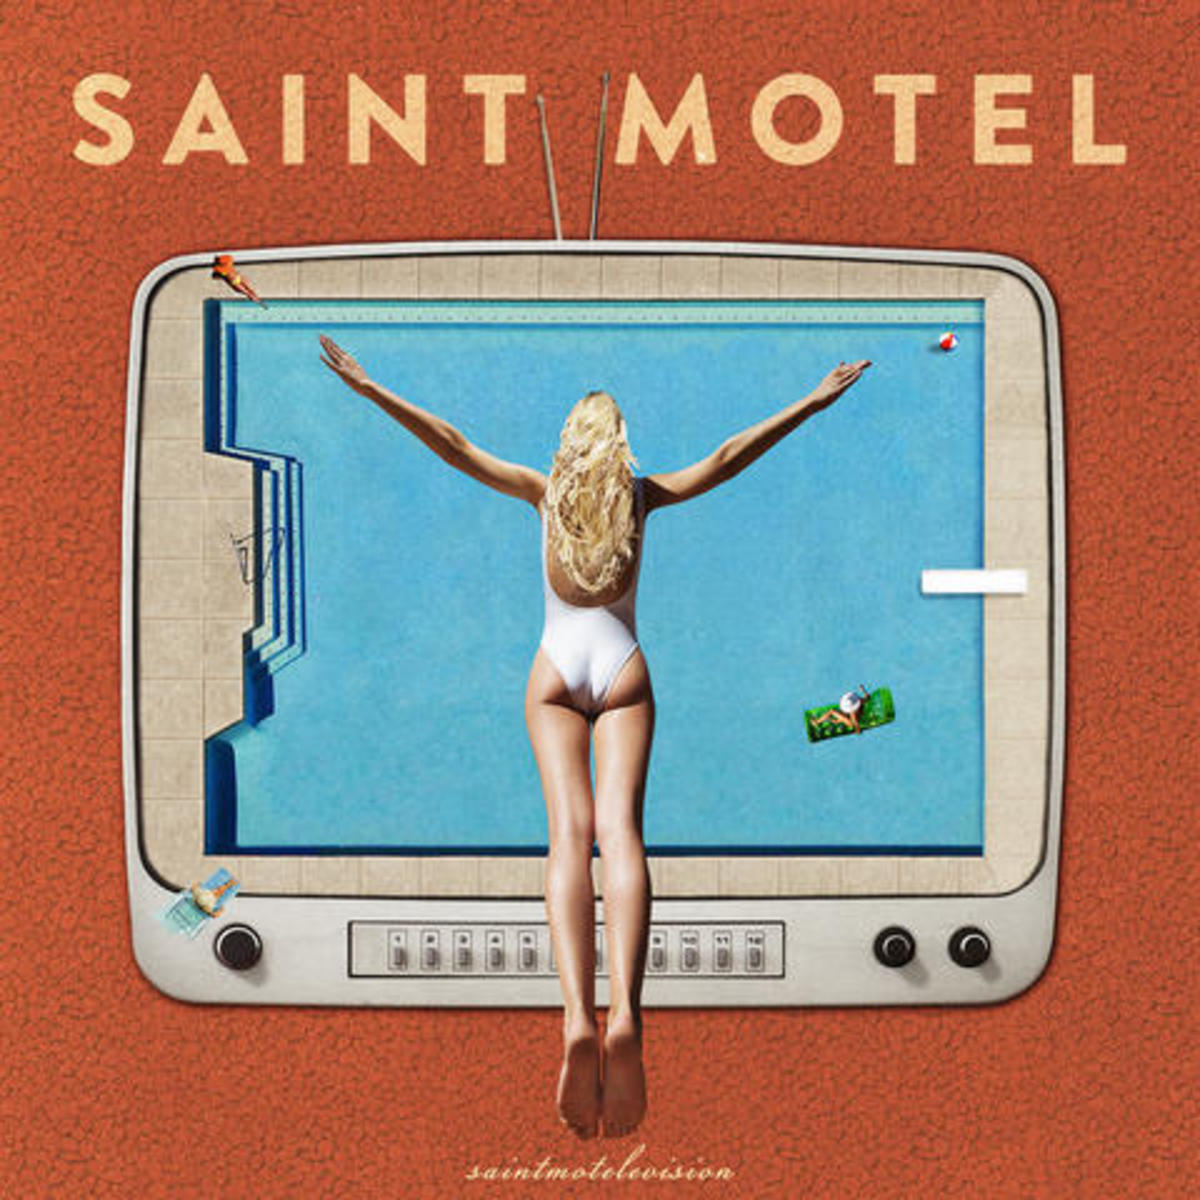 Album Review: Saintmotelevision by Saint Motel